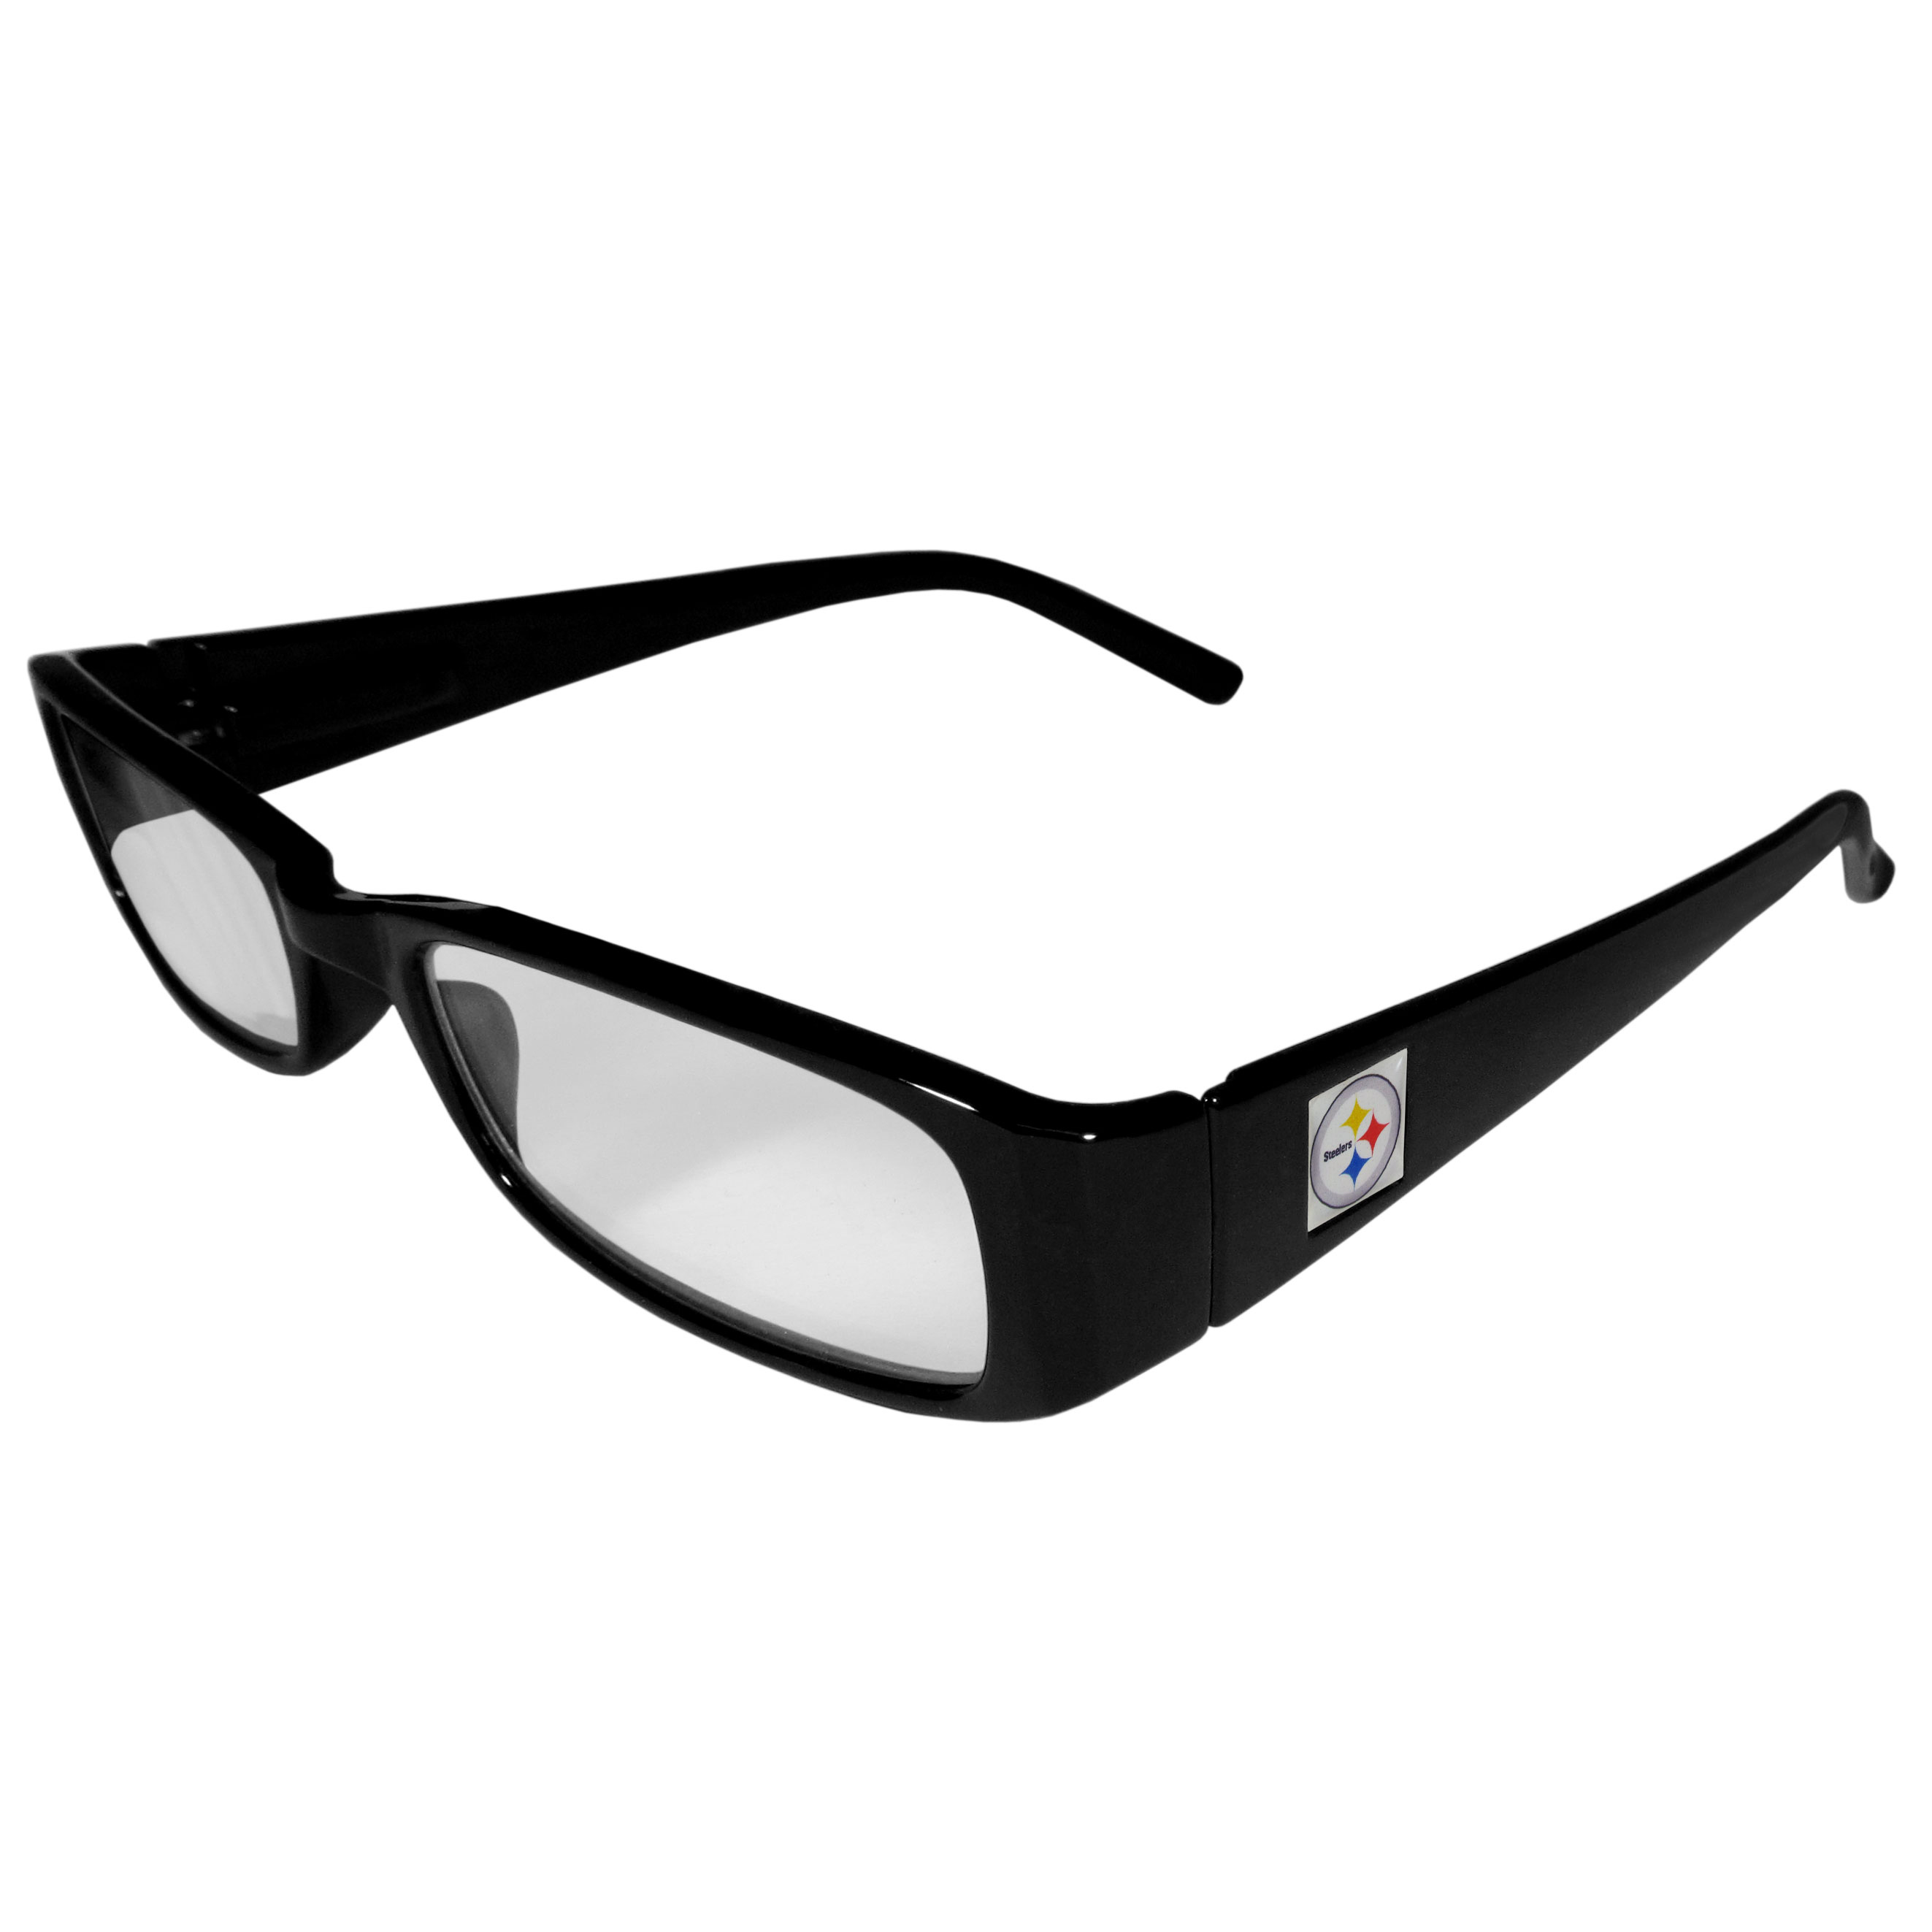 Pittsburgh Steelers Black Reading Glasses +1.25 - Our Pittsburgh Steelers reading glasses are 5.25 inches wide and feature the team logo on each arm. Magnification Power 1.25